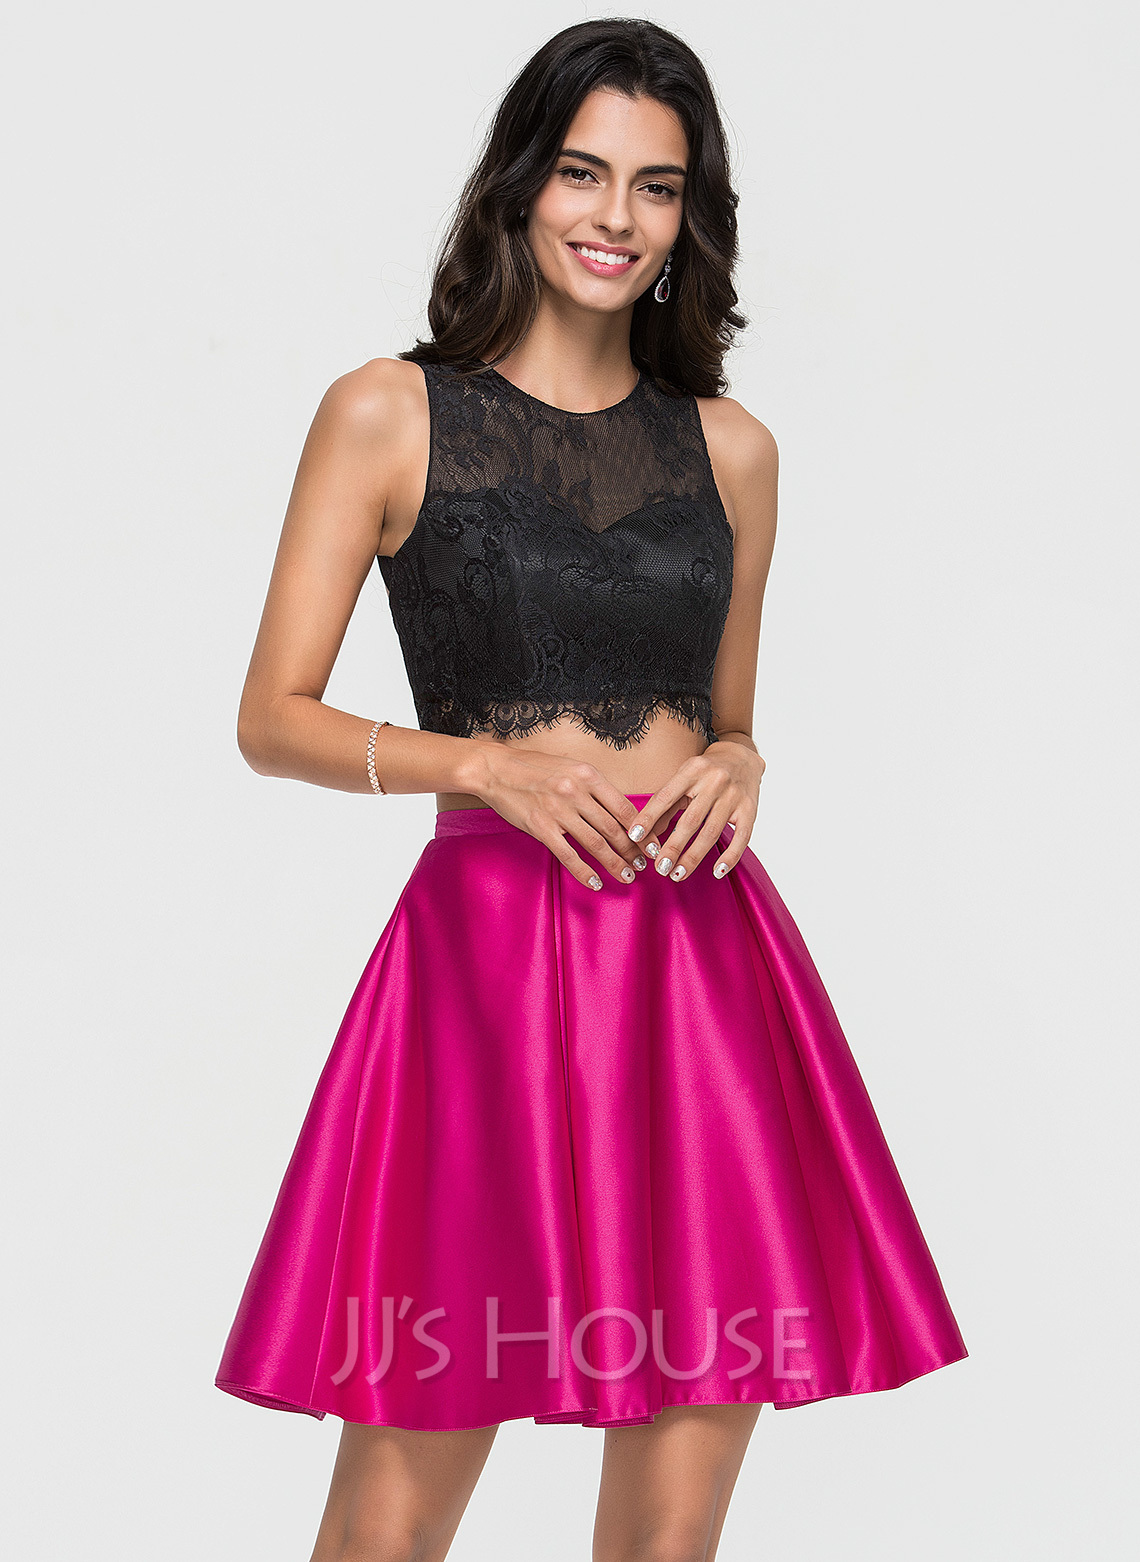 A-Line Scoop Neck Short/Mini Satin Homecoming Dress With Lace